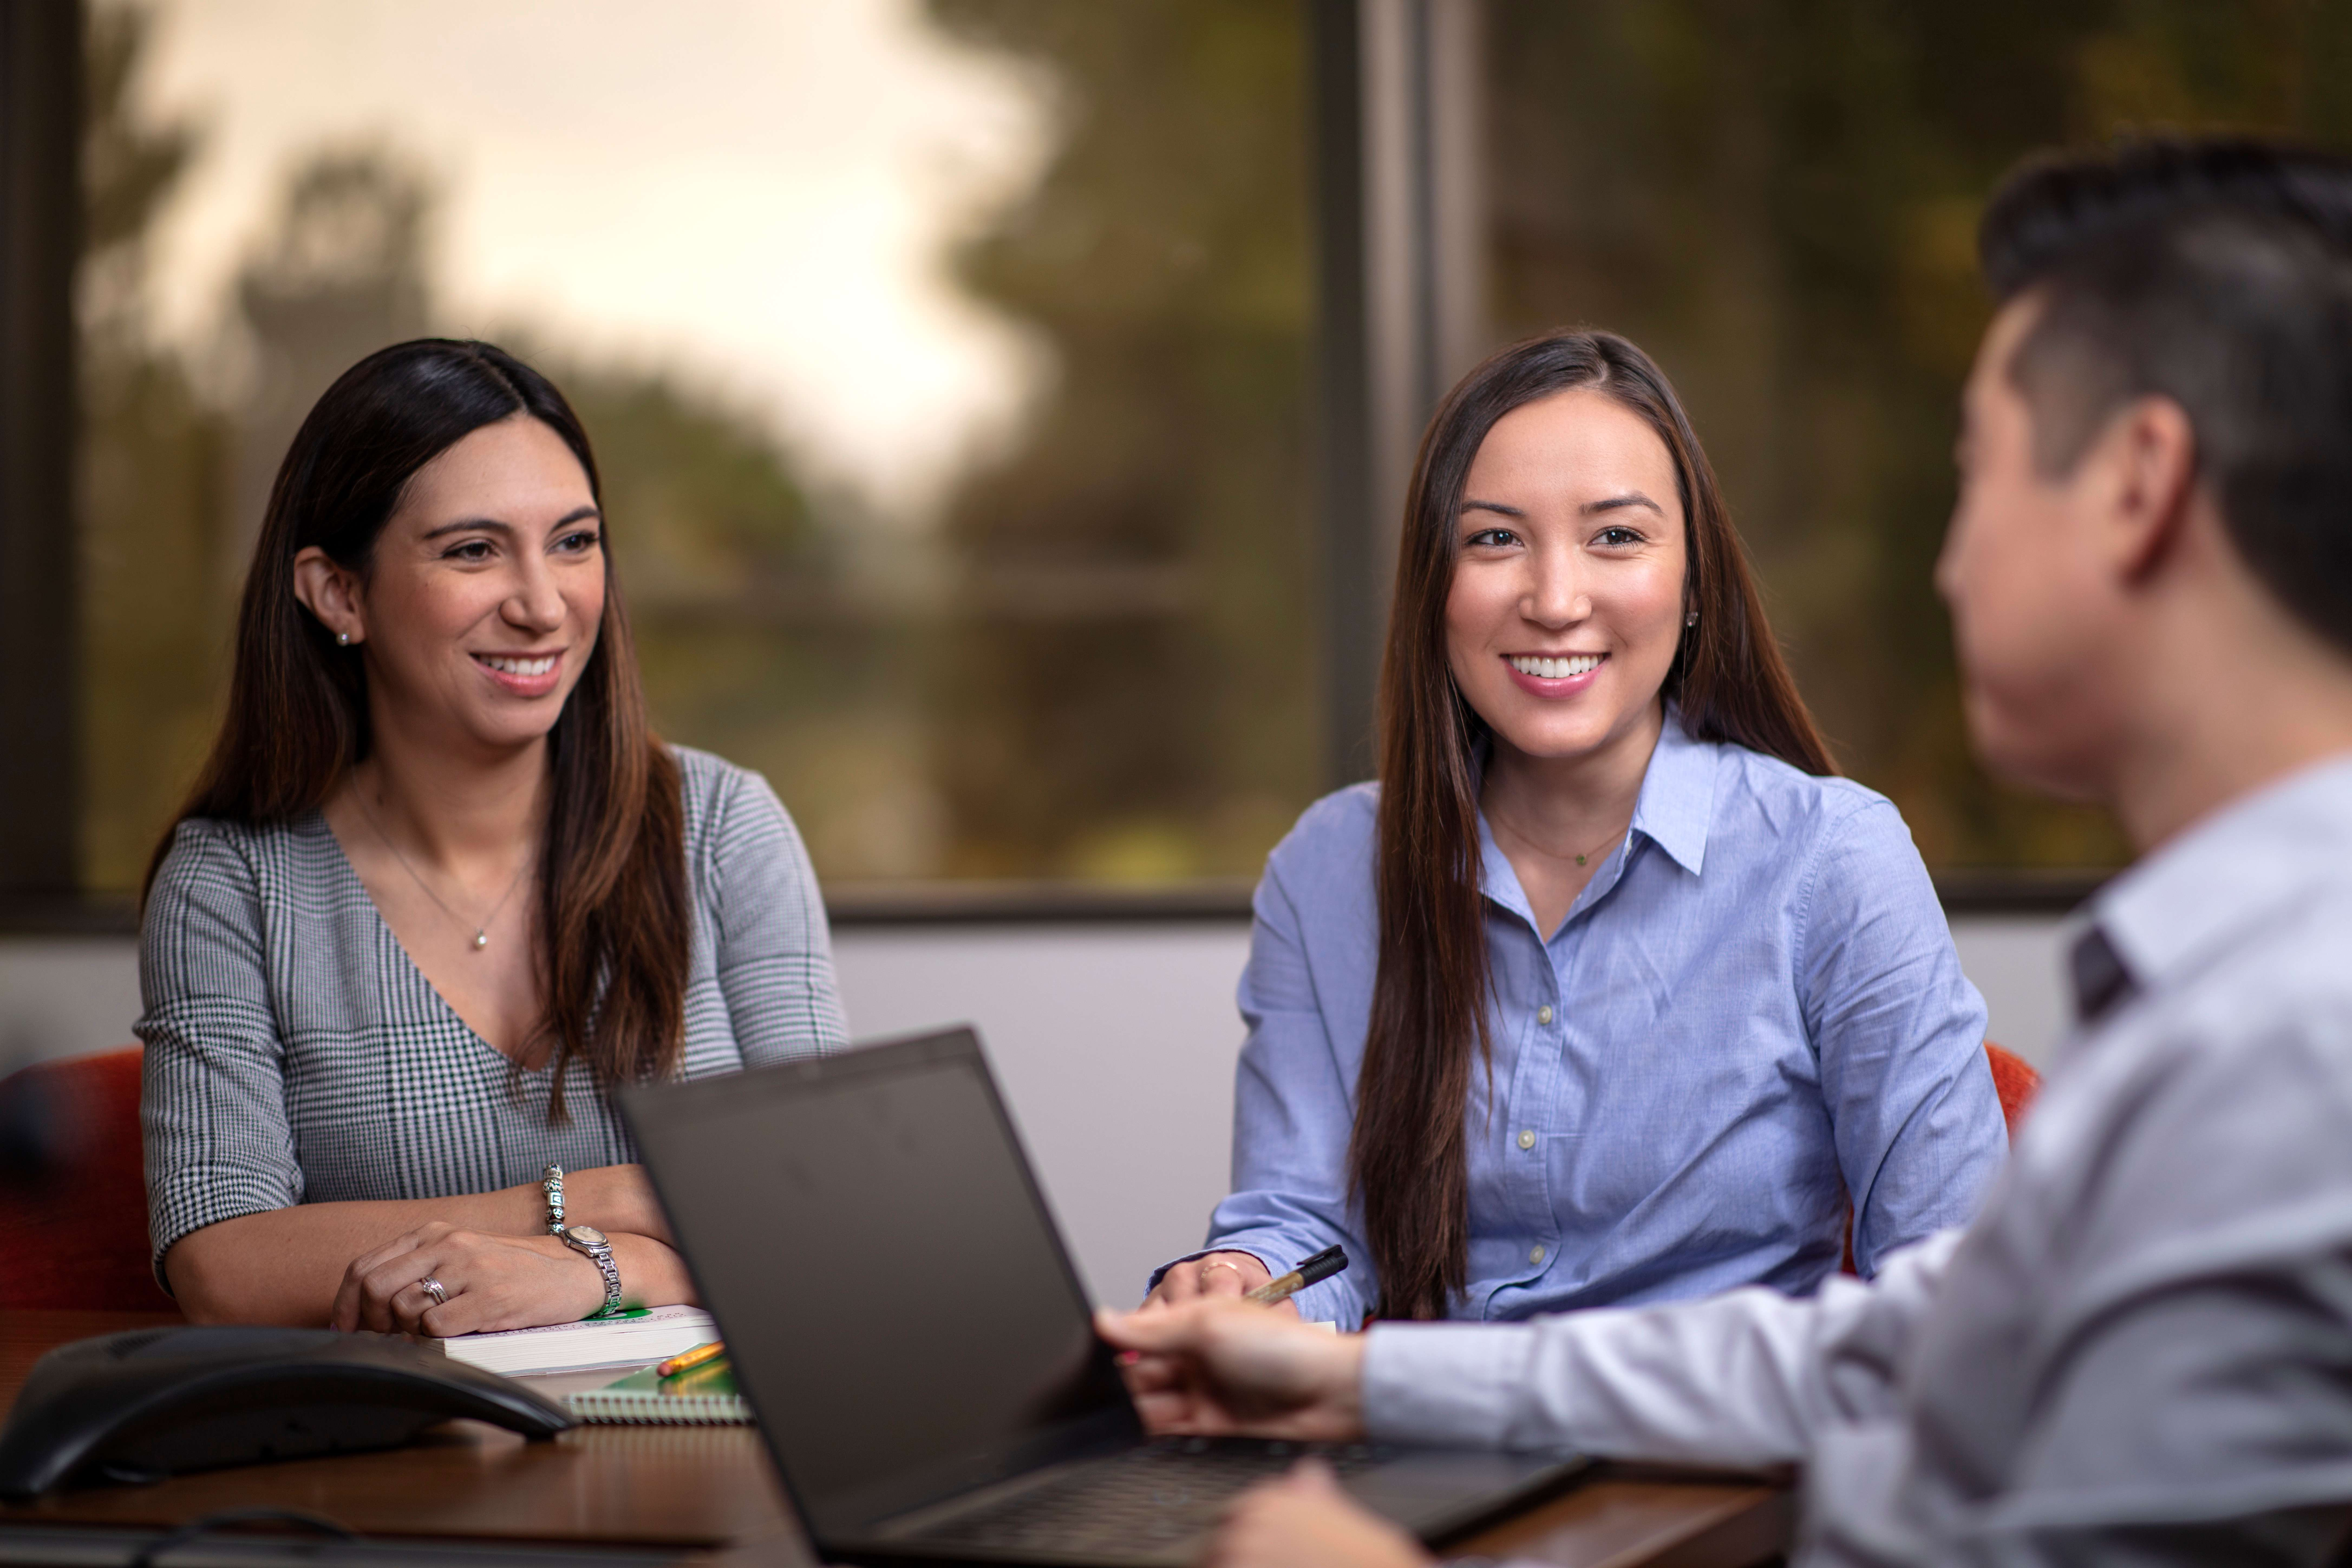 Two women smiling with a man on a laptop looking at them